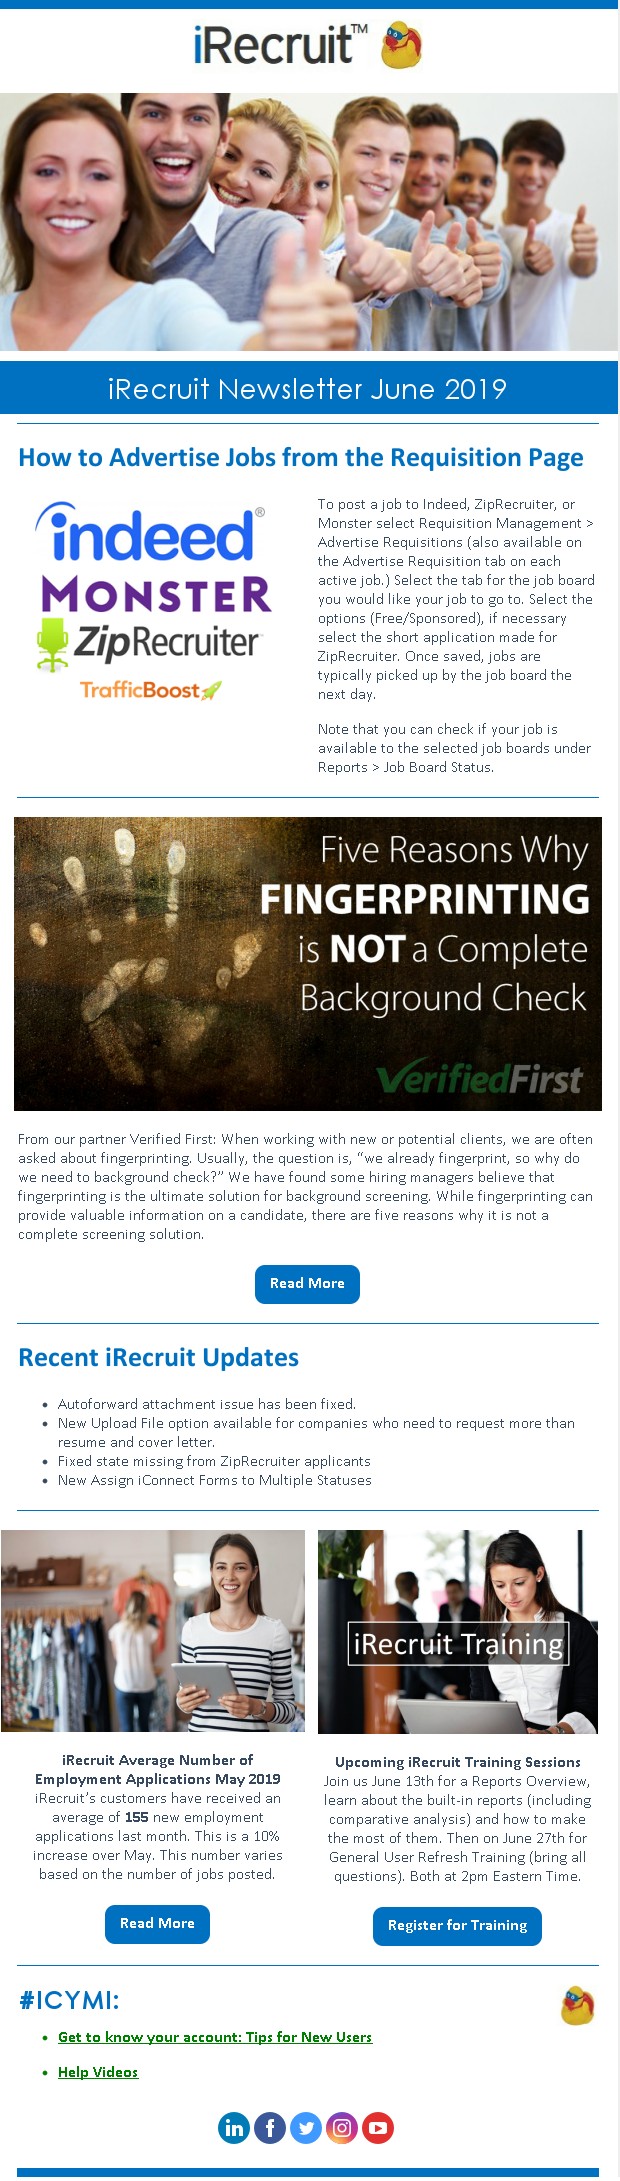 iRecruit Customer Newsletter June 2019